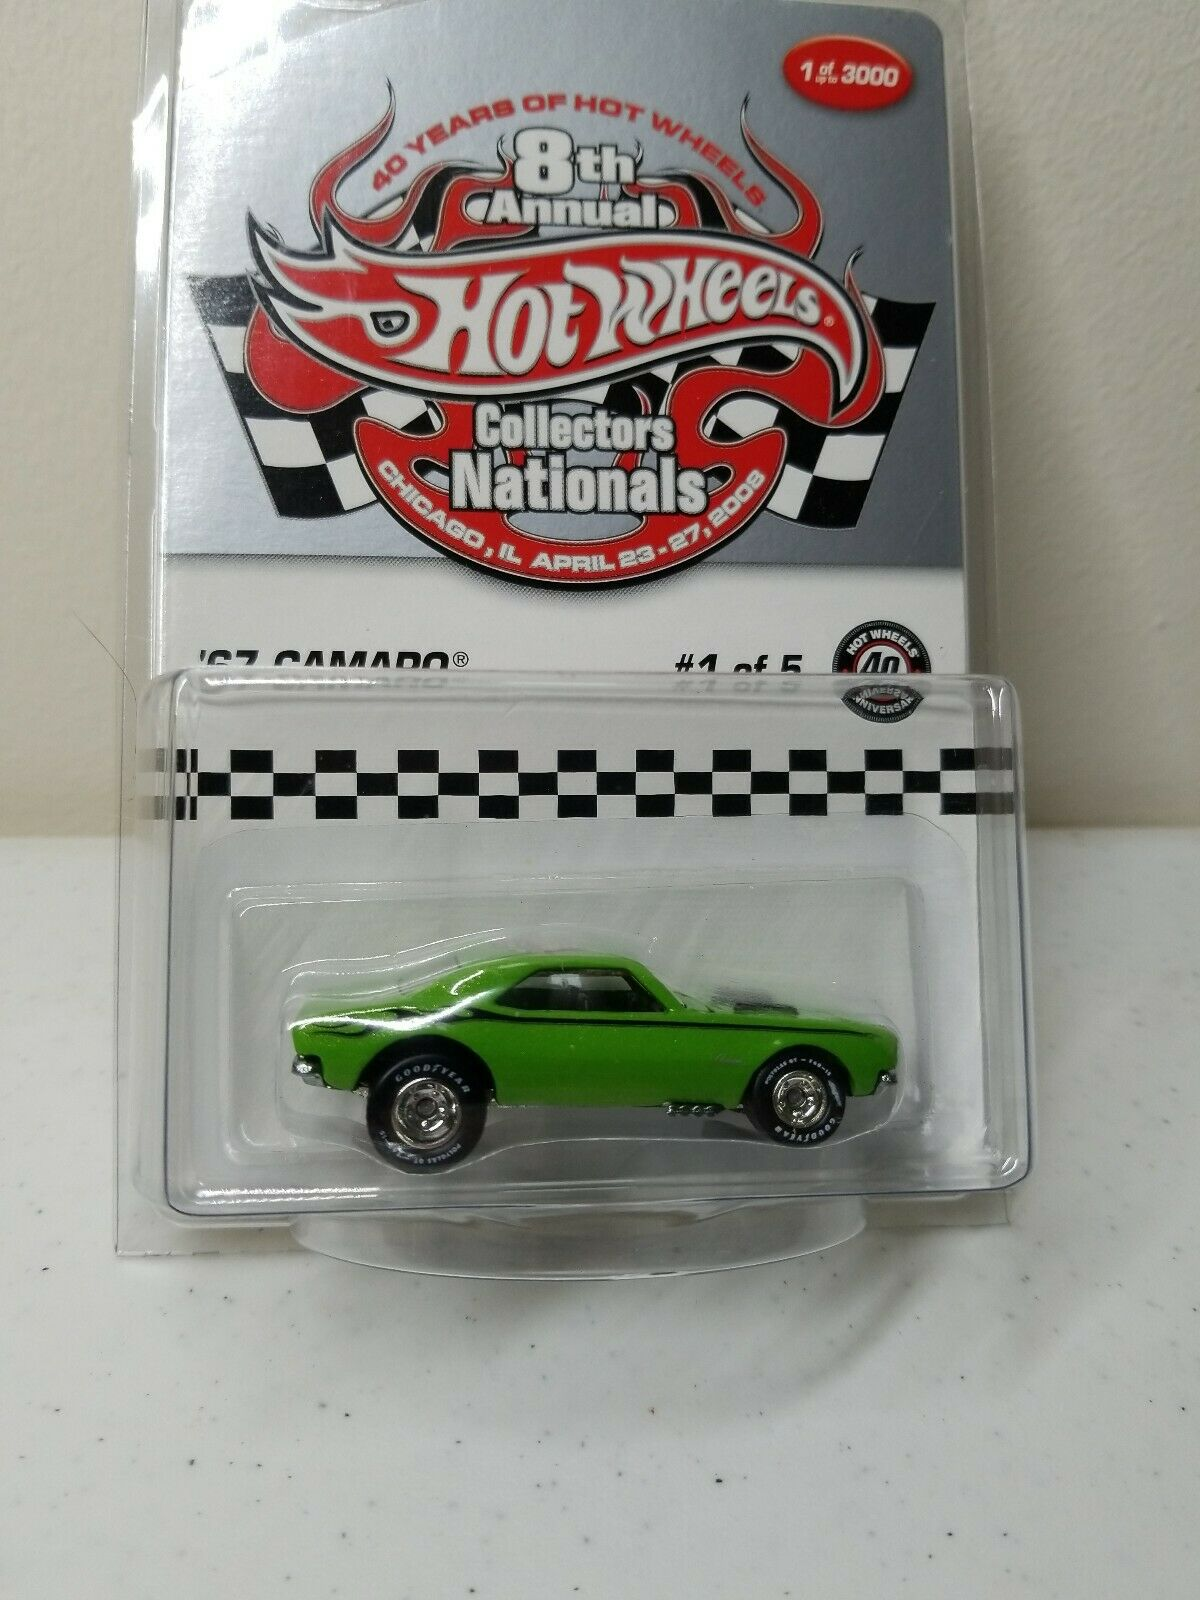 '67 Camaro Of Of Of 5 Hot Wheels 8th Annual Collector Nationals Of 5 3a8401